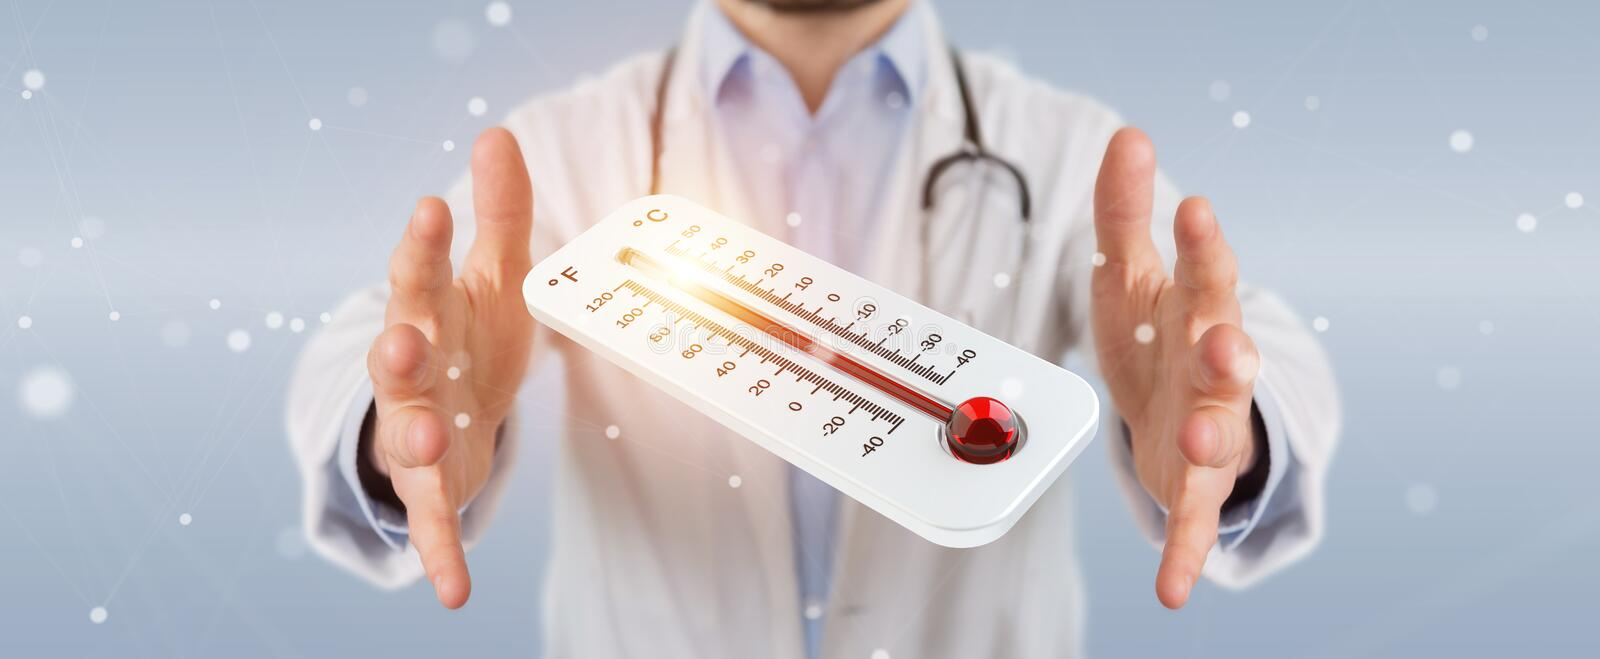 Doctor holding red hot digital thermometer 3D rendering vector illustration